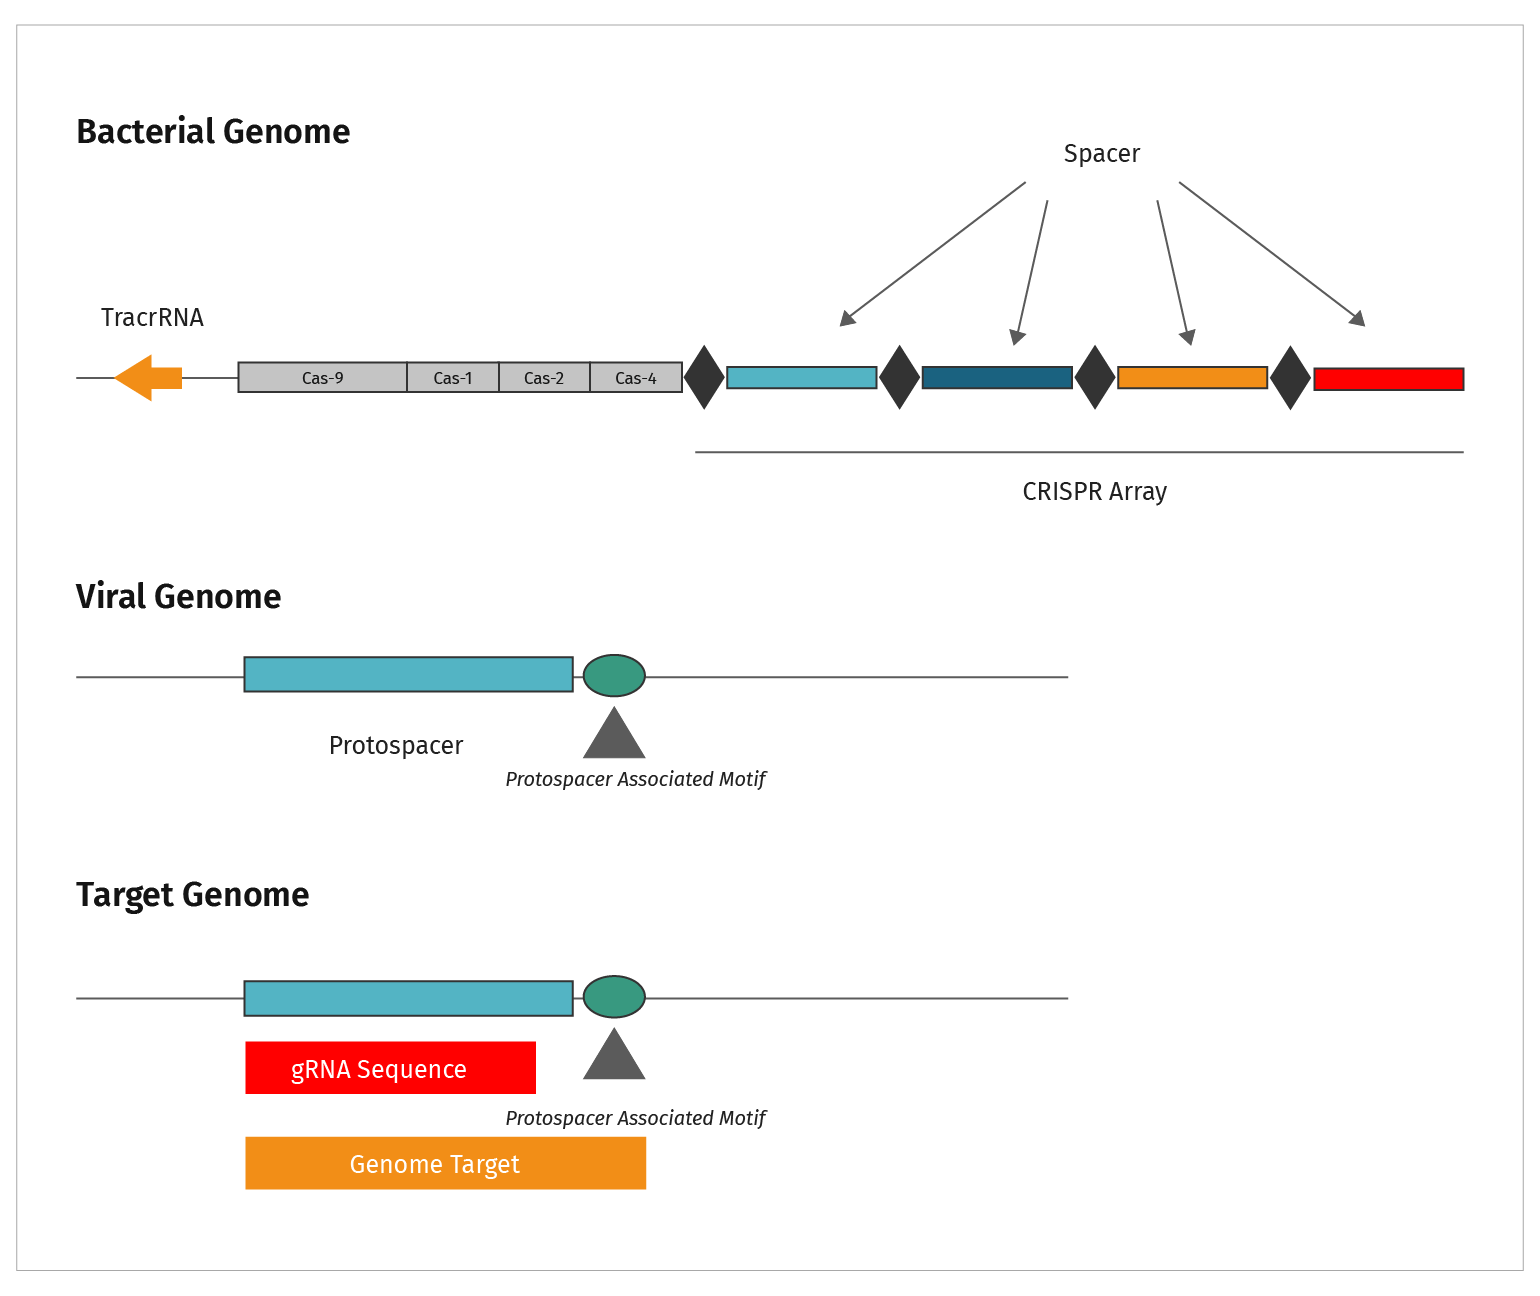 Figure 8: Diagram showing relationship of bacterial genome, to viral genome that must be defended against by CRISPR  and target genome that will be edited by CRIPSR